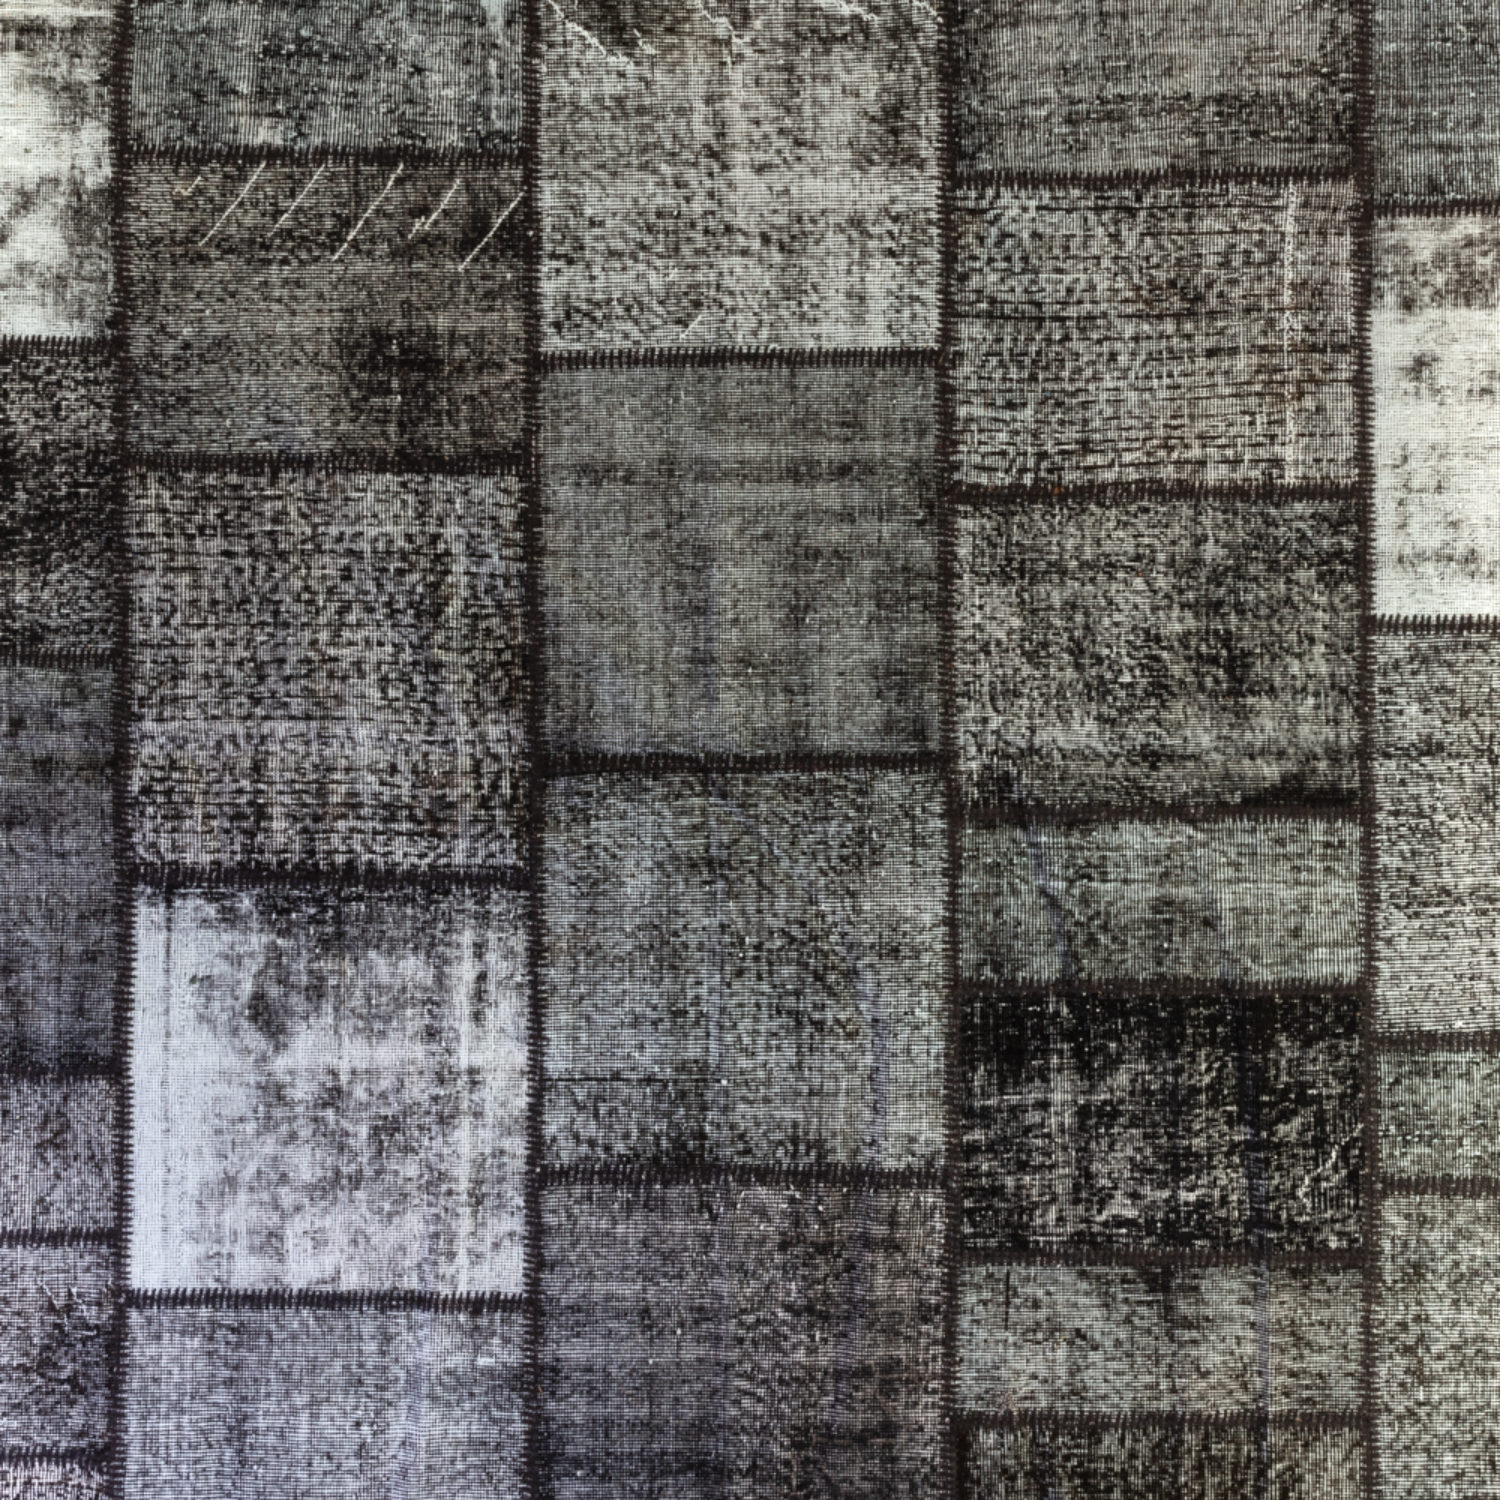 A patchwork of repurposed vintage rugs